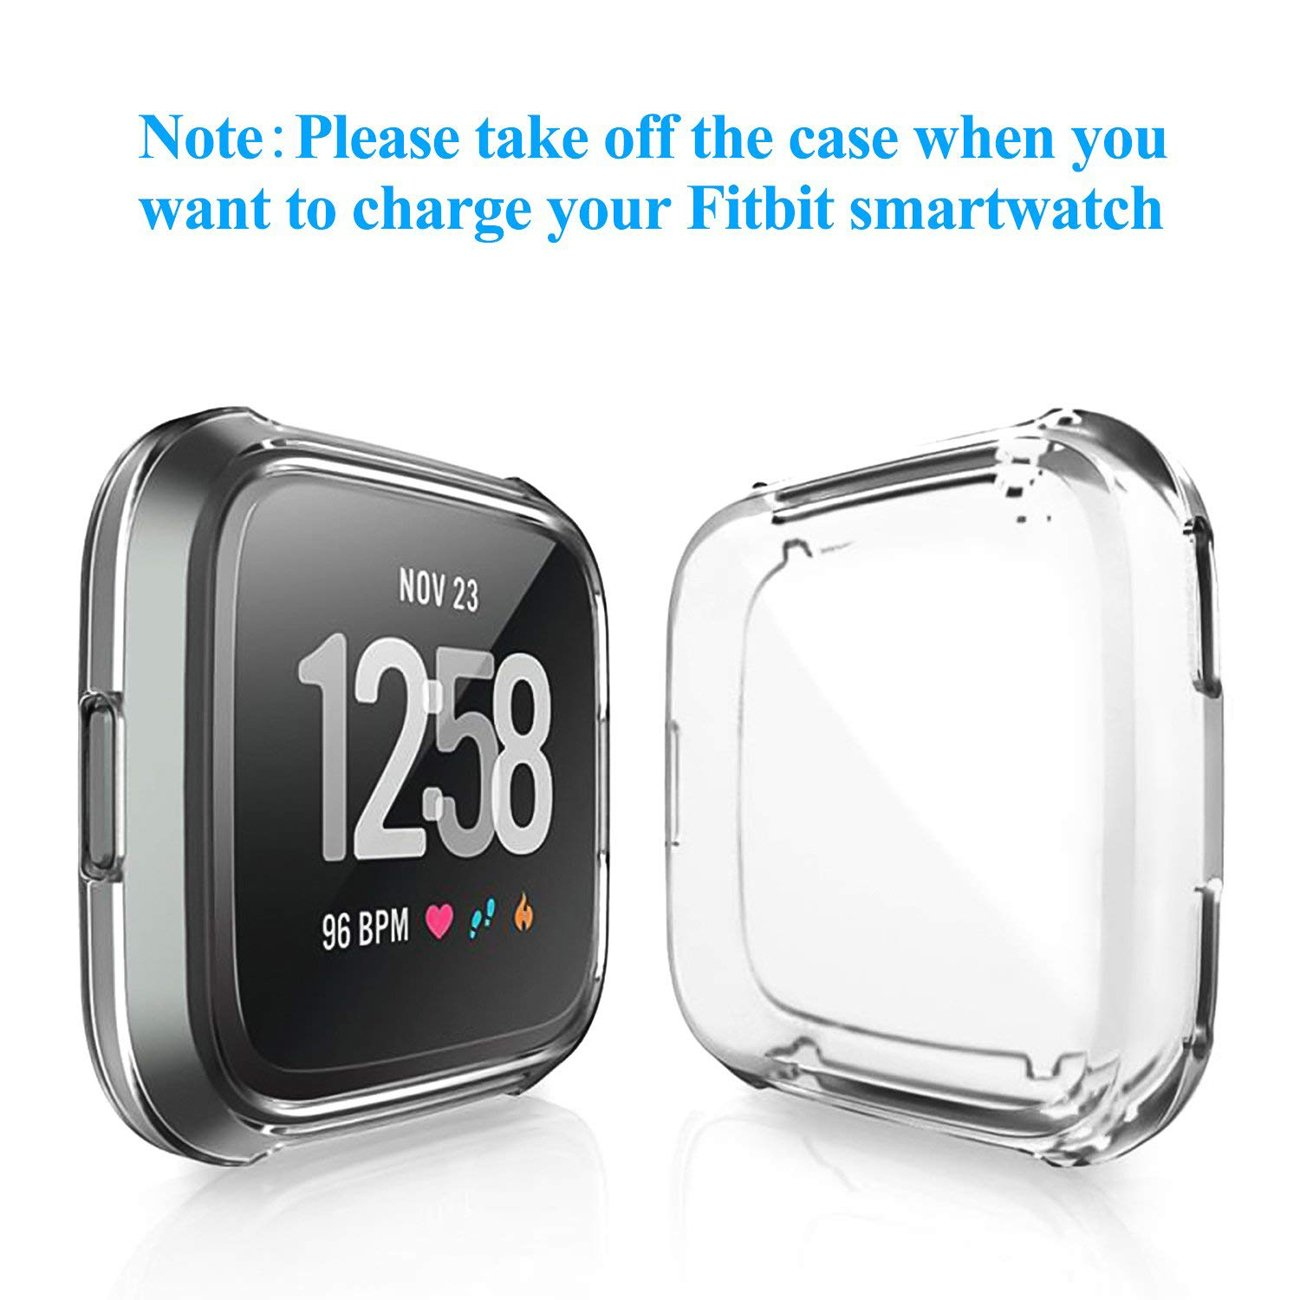 GerTong Soft Silicone TPU Full Cover Case For Fitbit Versa Ultra-thin Soft Plating TPU Protection For Fitbit Versa Protective Shell Frame for Fitbit Versa Smartwatch Clear by GerTong (Image #3)